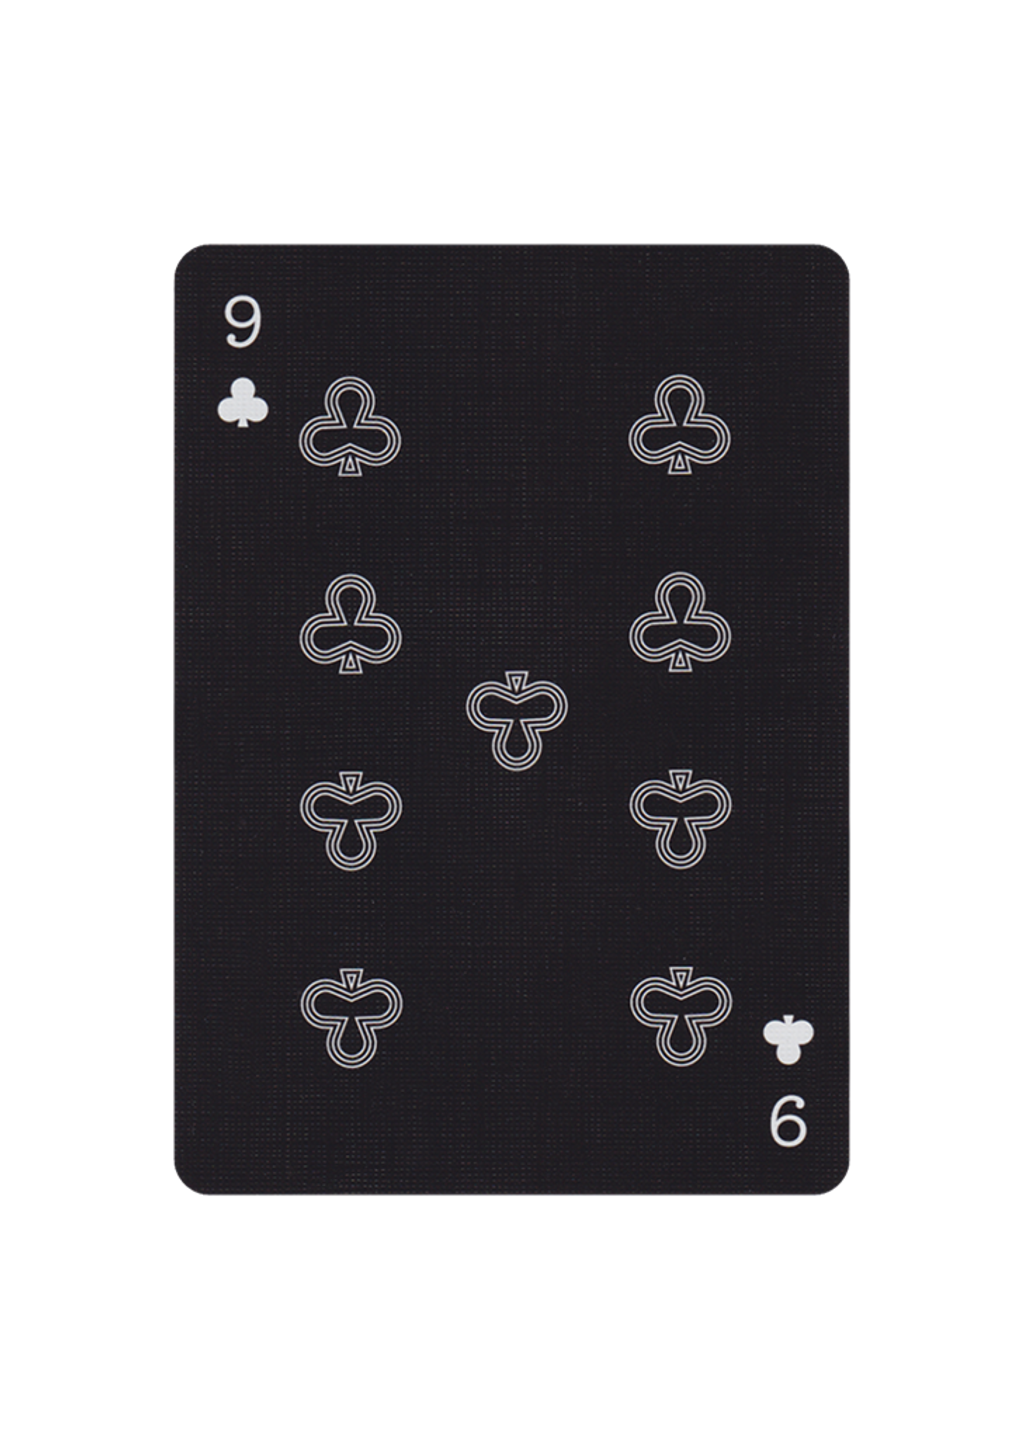 playing-cards-third-man-records-7_1024x1024.png